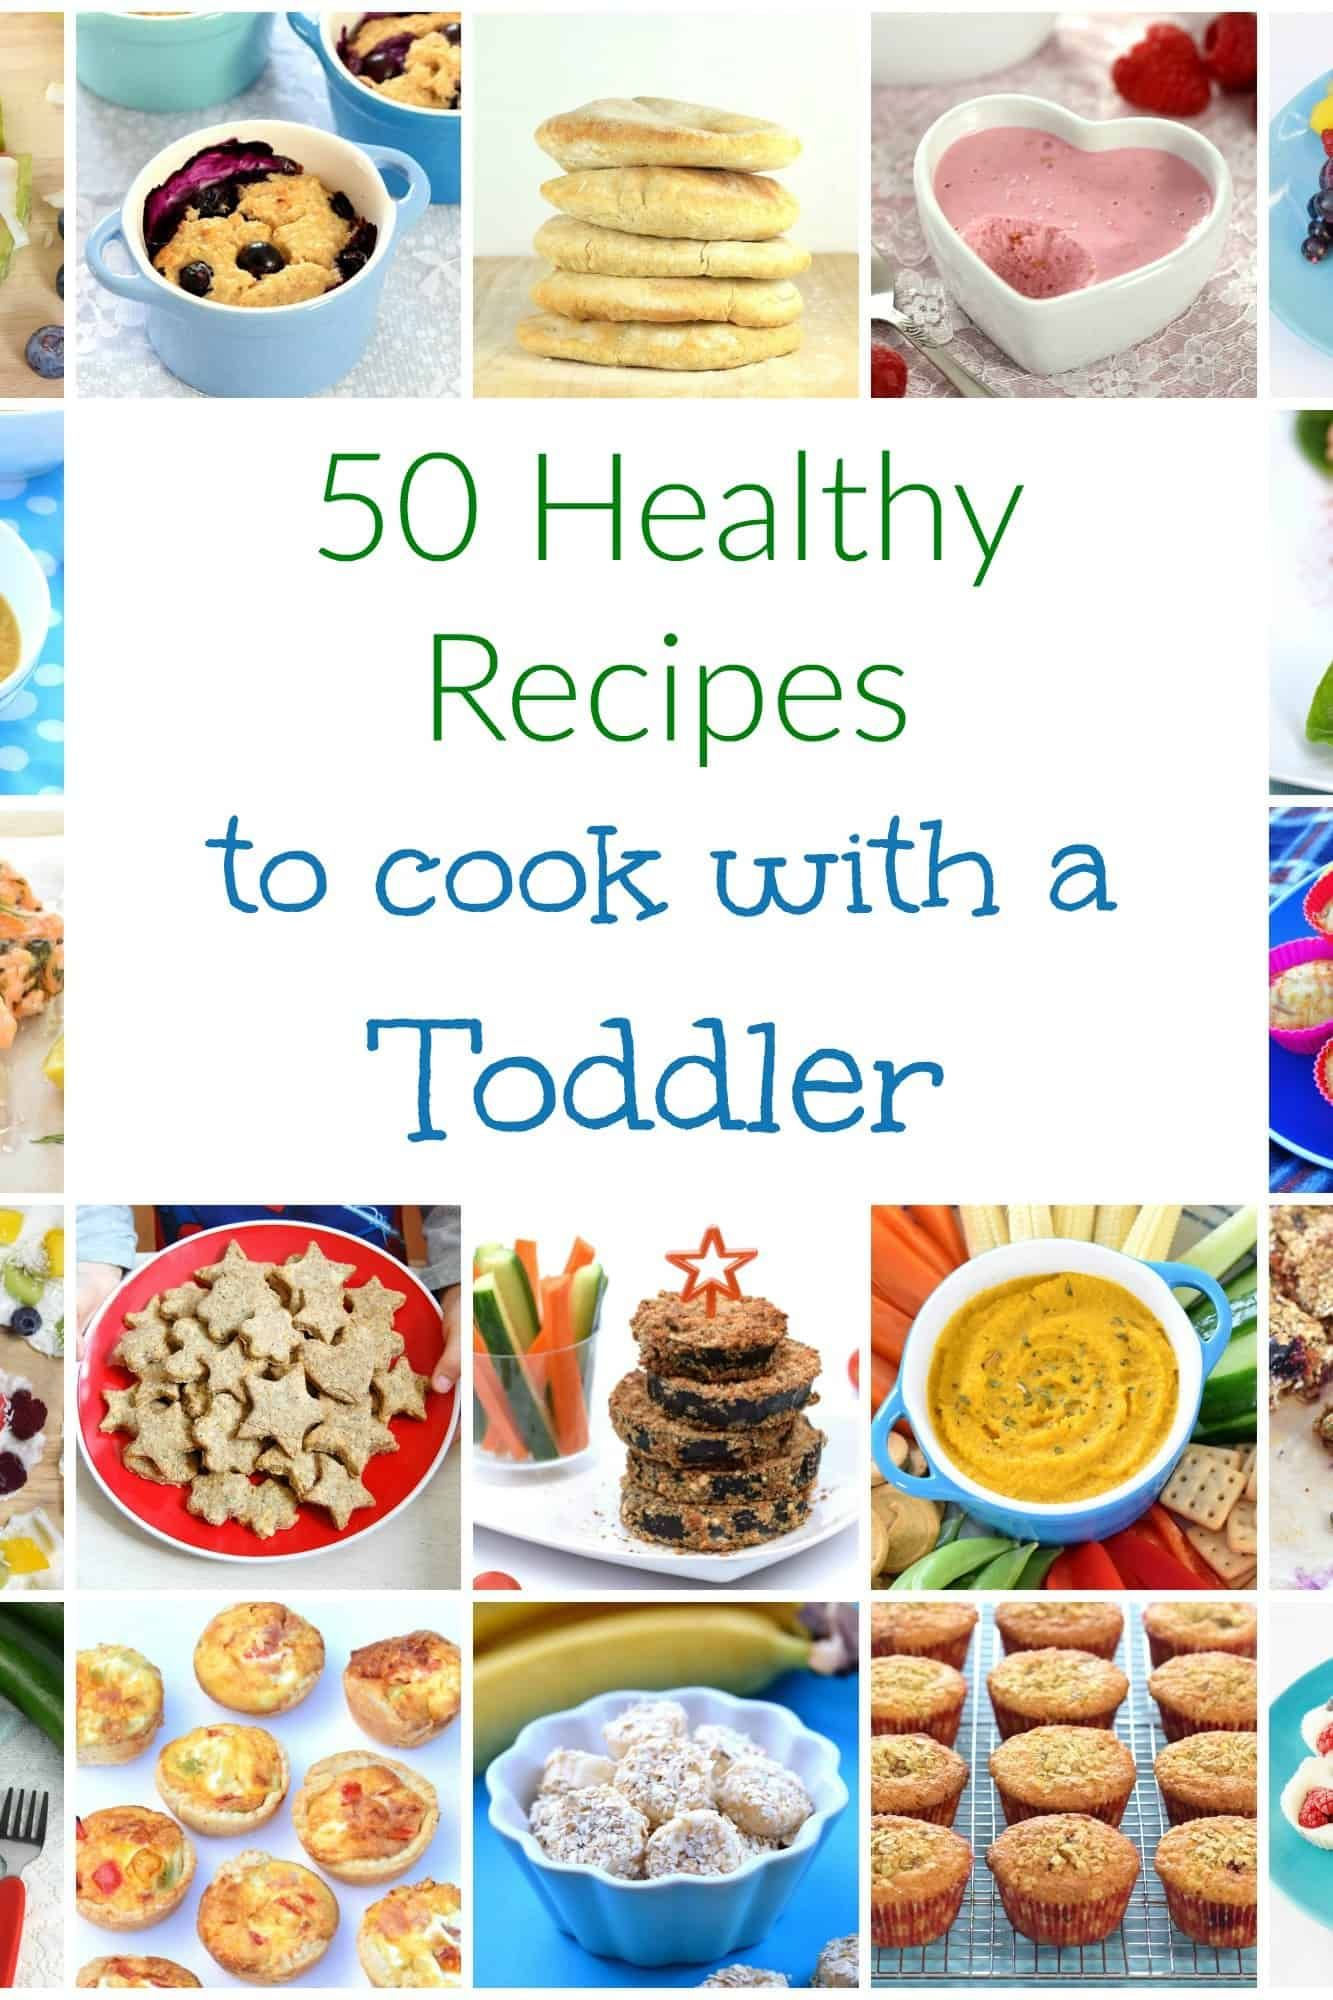 50 Healthy Recipes to Cook with Toddlers   Kids cooking ...